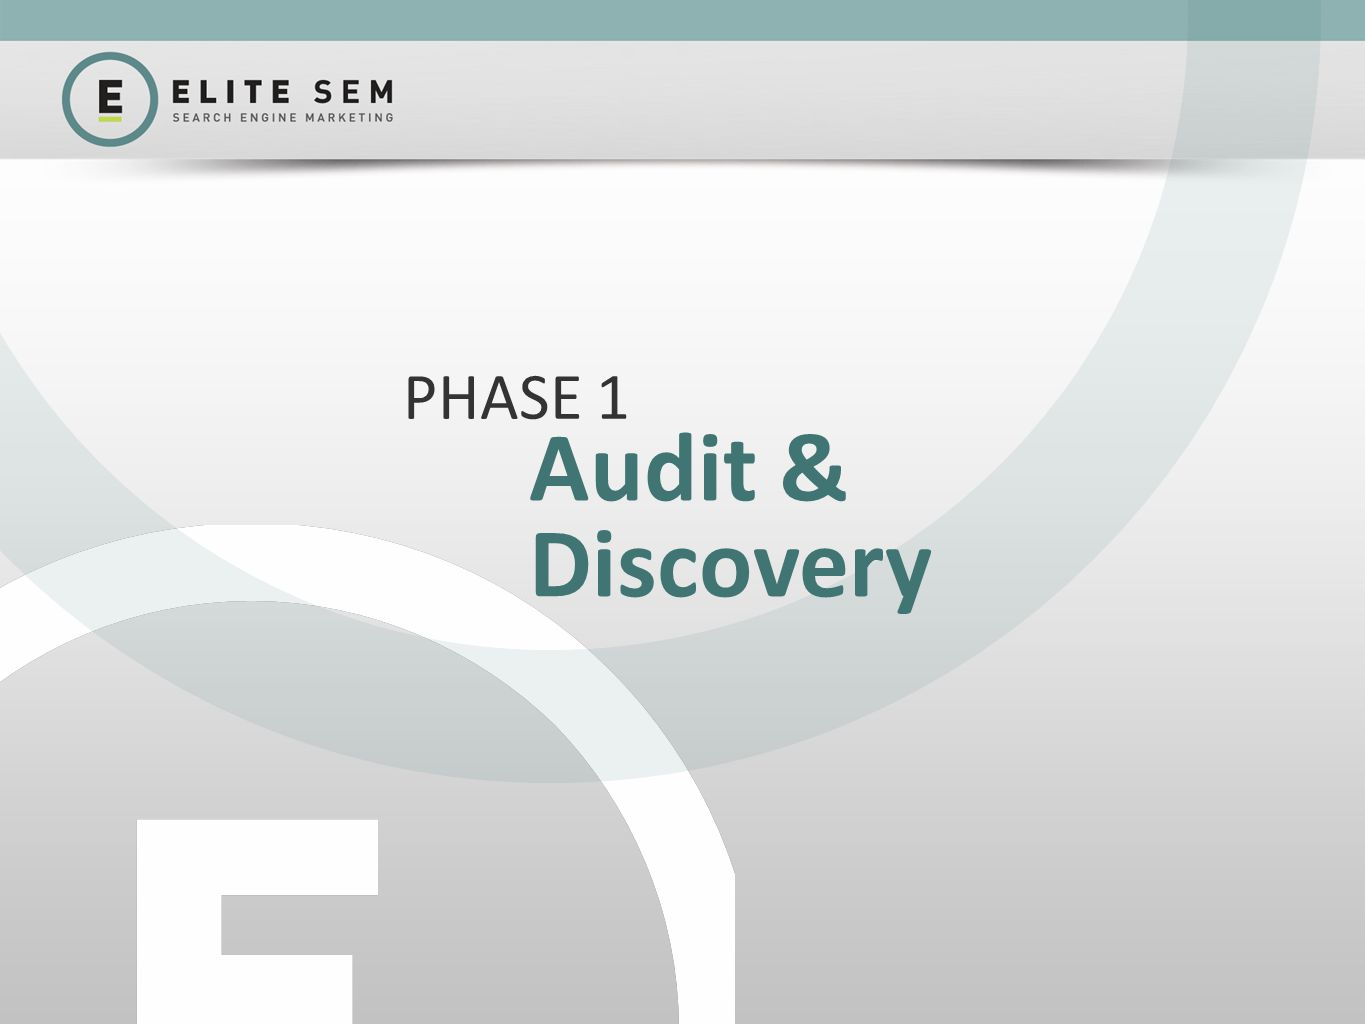 Audit & Discovery PHASE 1